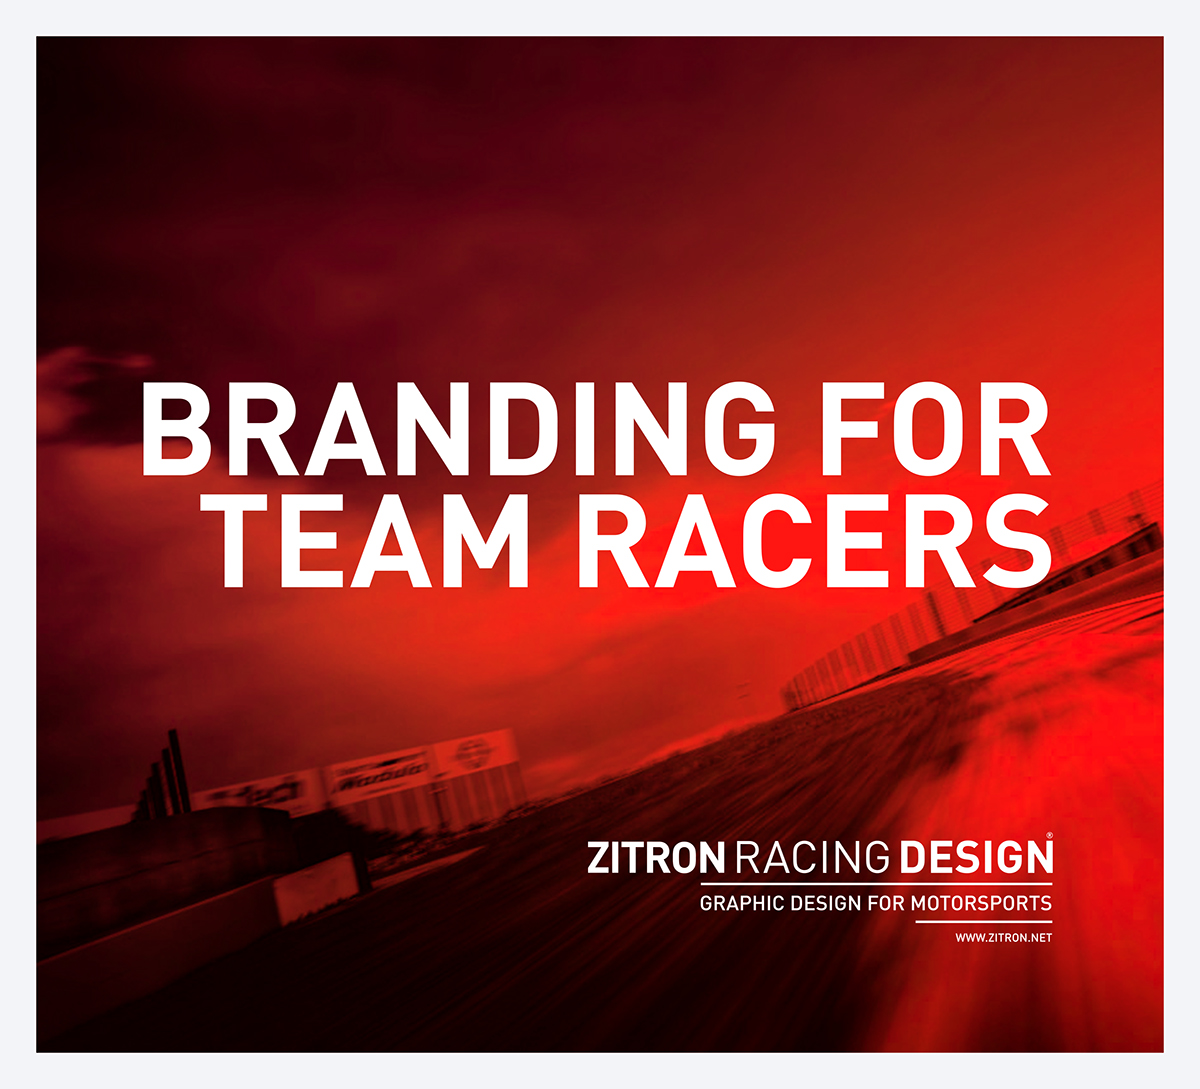 brand Racing Race Drivers drivers teams motorsports racing design DESIGN FOR RACERS zitron TEAM RACERS gt Touring Car Championship Championship livery design